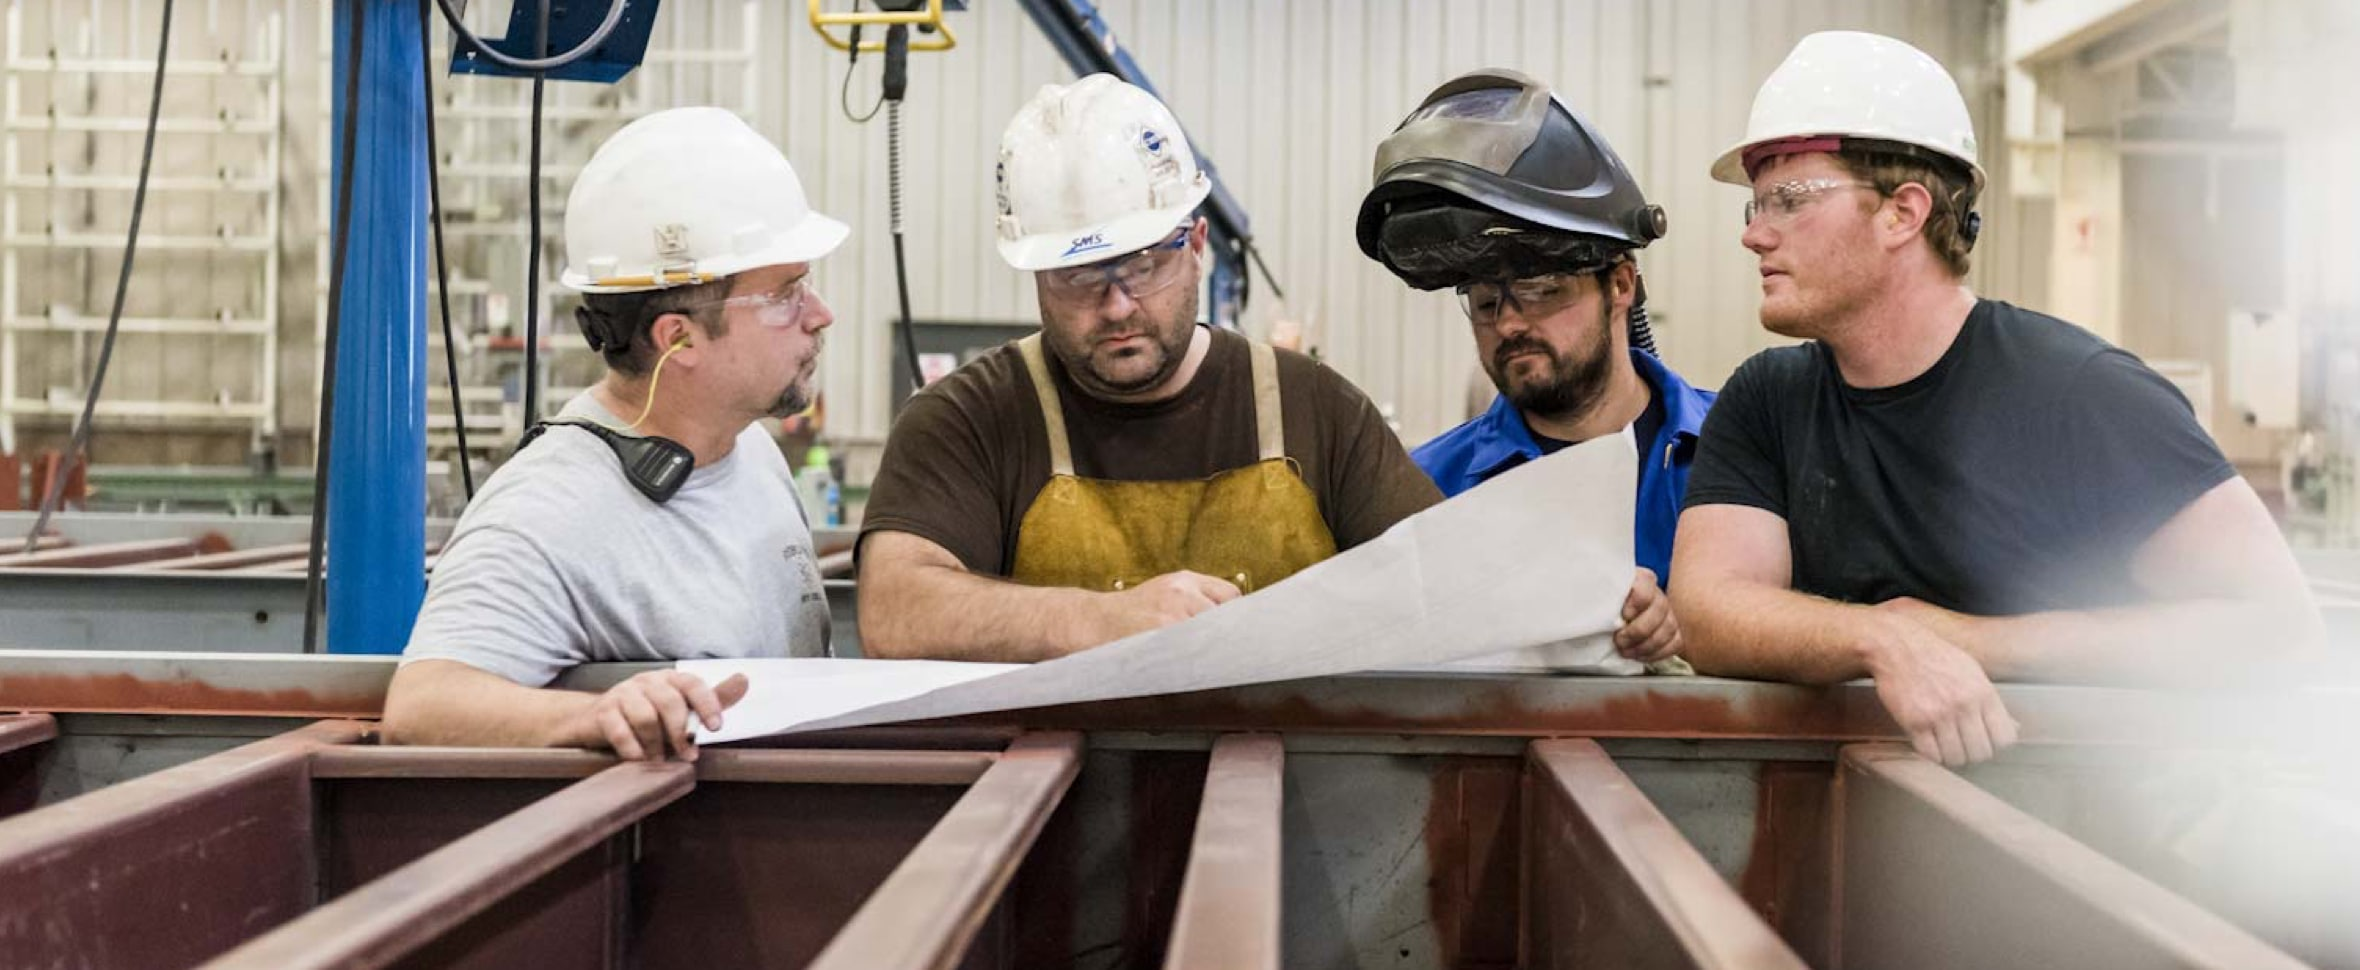 Collaboration - Four workers reviewing blueprints of a large enclosure they're building